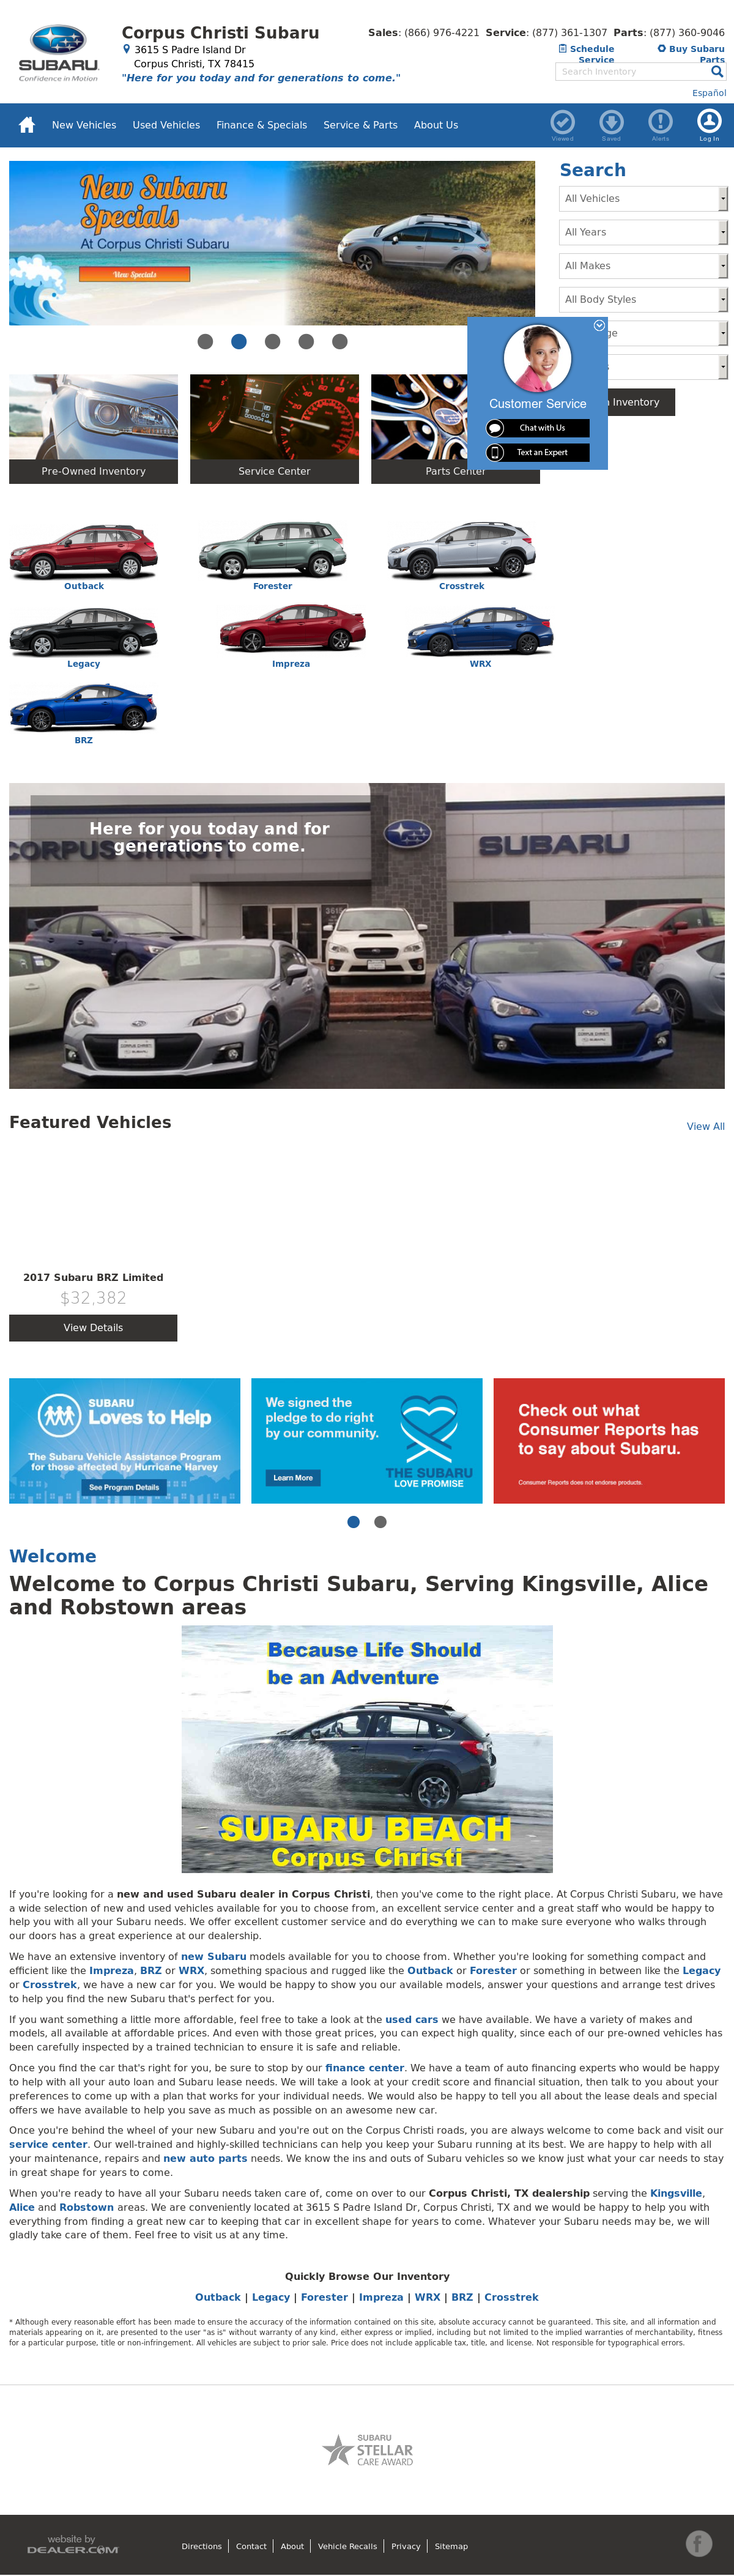 Corpus Christi Subaru >> Corpus Christi Subaru Competitors Revenue And Employees Owler